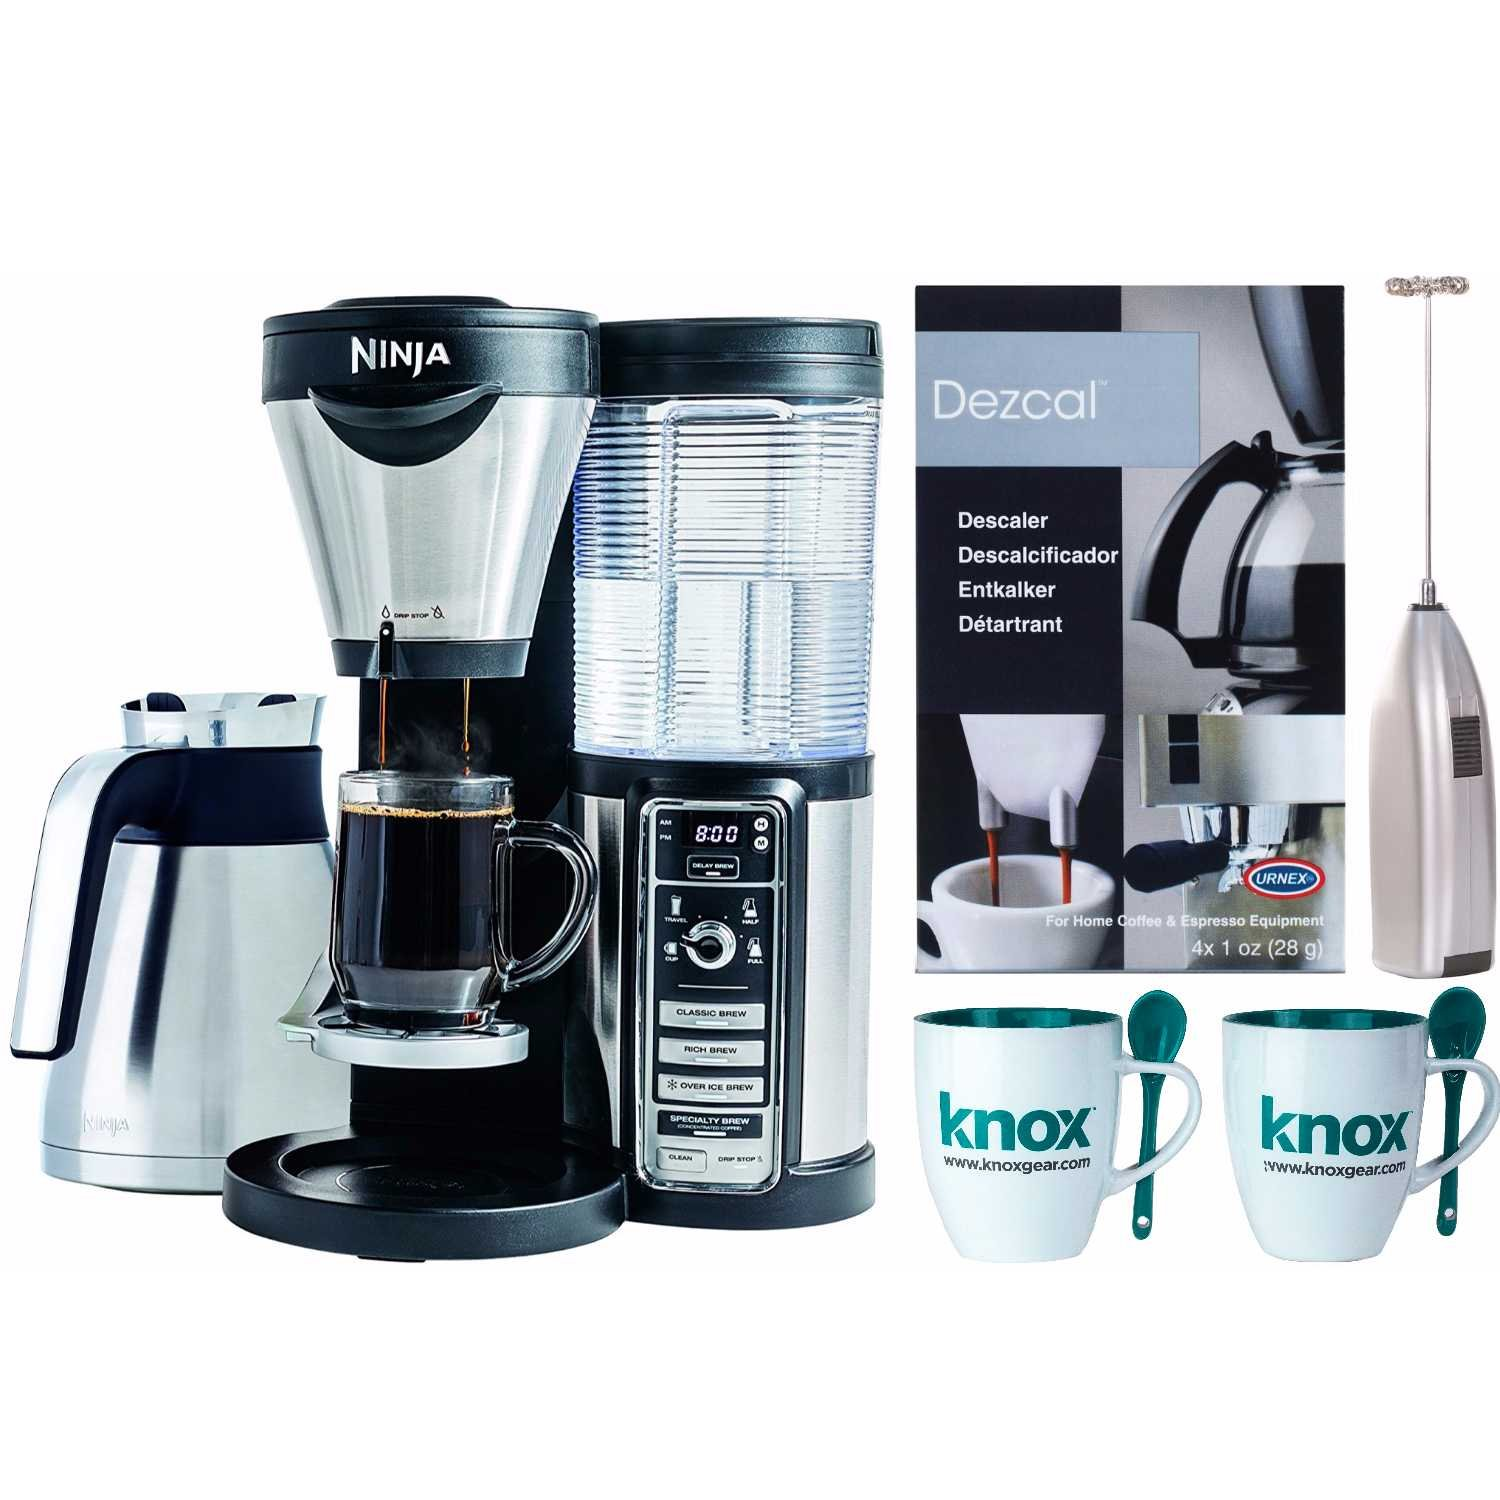 Ninja Coffee Brewer with Knox mugs, Milk Frother, Urnex Descaling Powder (4 pk)